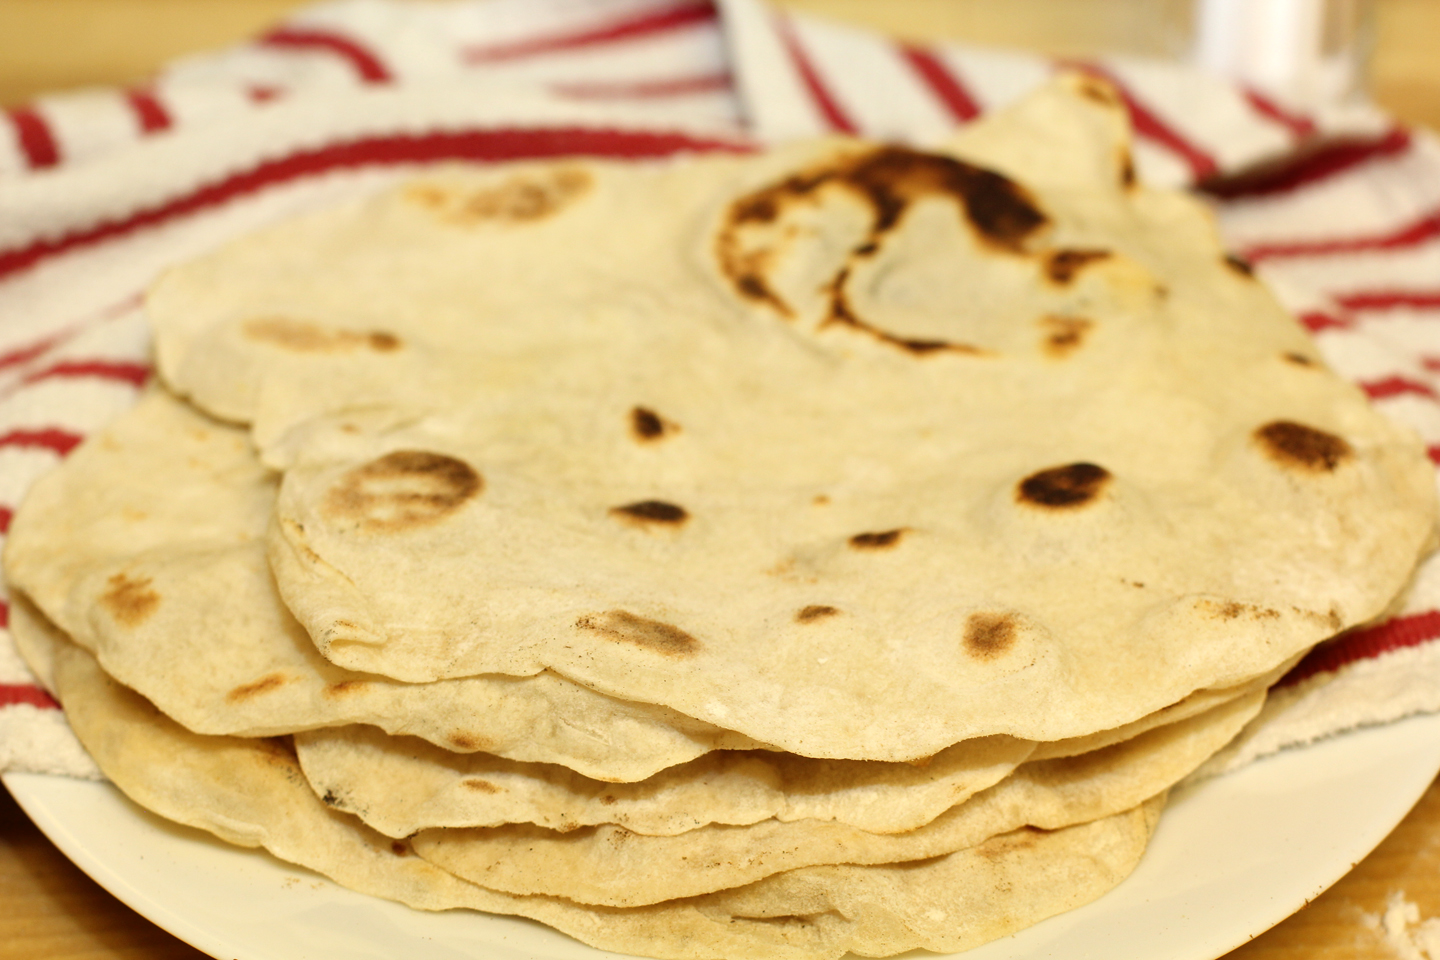 Astonishing The No Pressure Cooker Tortillas An Anniversary And A Giveaway Home Interior And Landscaping Spoatsignezvosmurscom